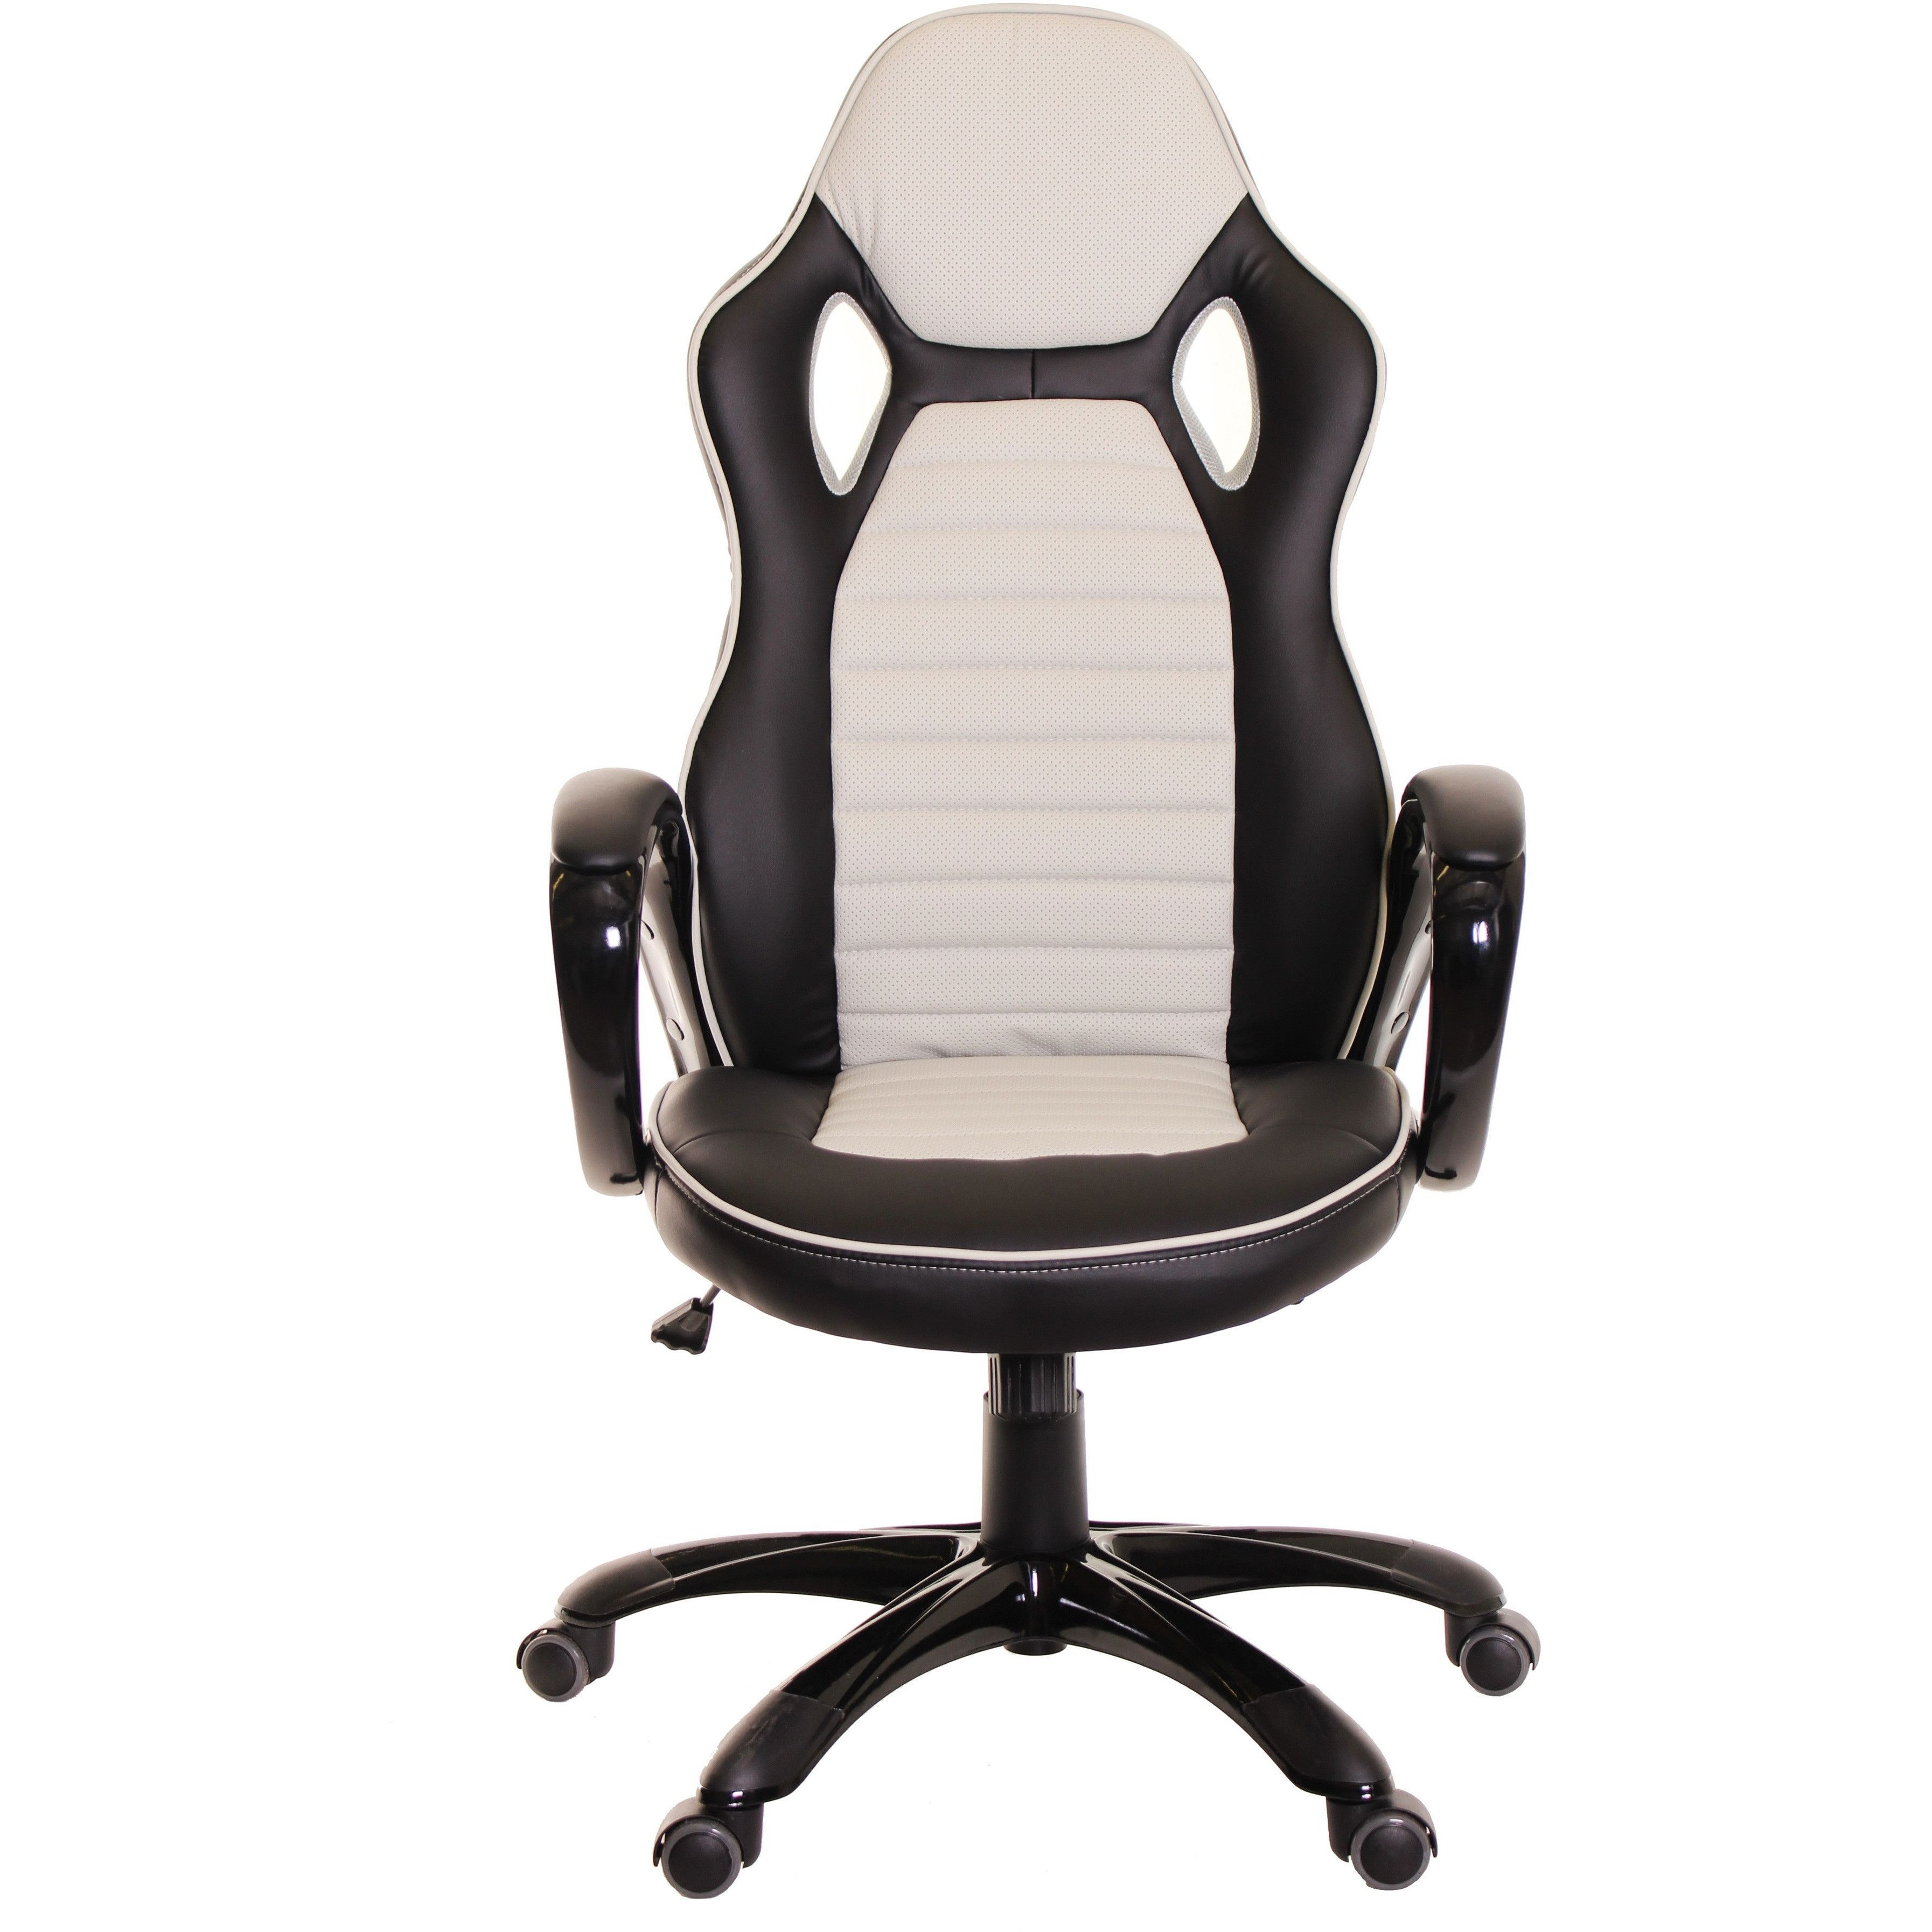 Race car style office chair gaming ergonomic leather chair by time